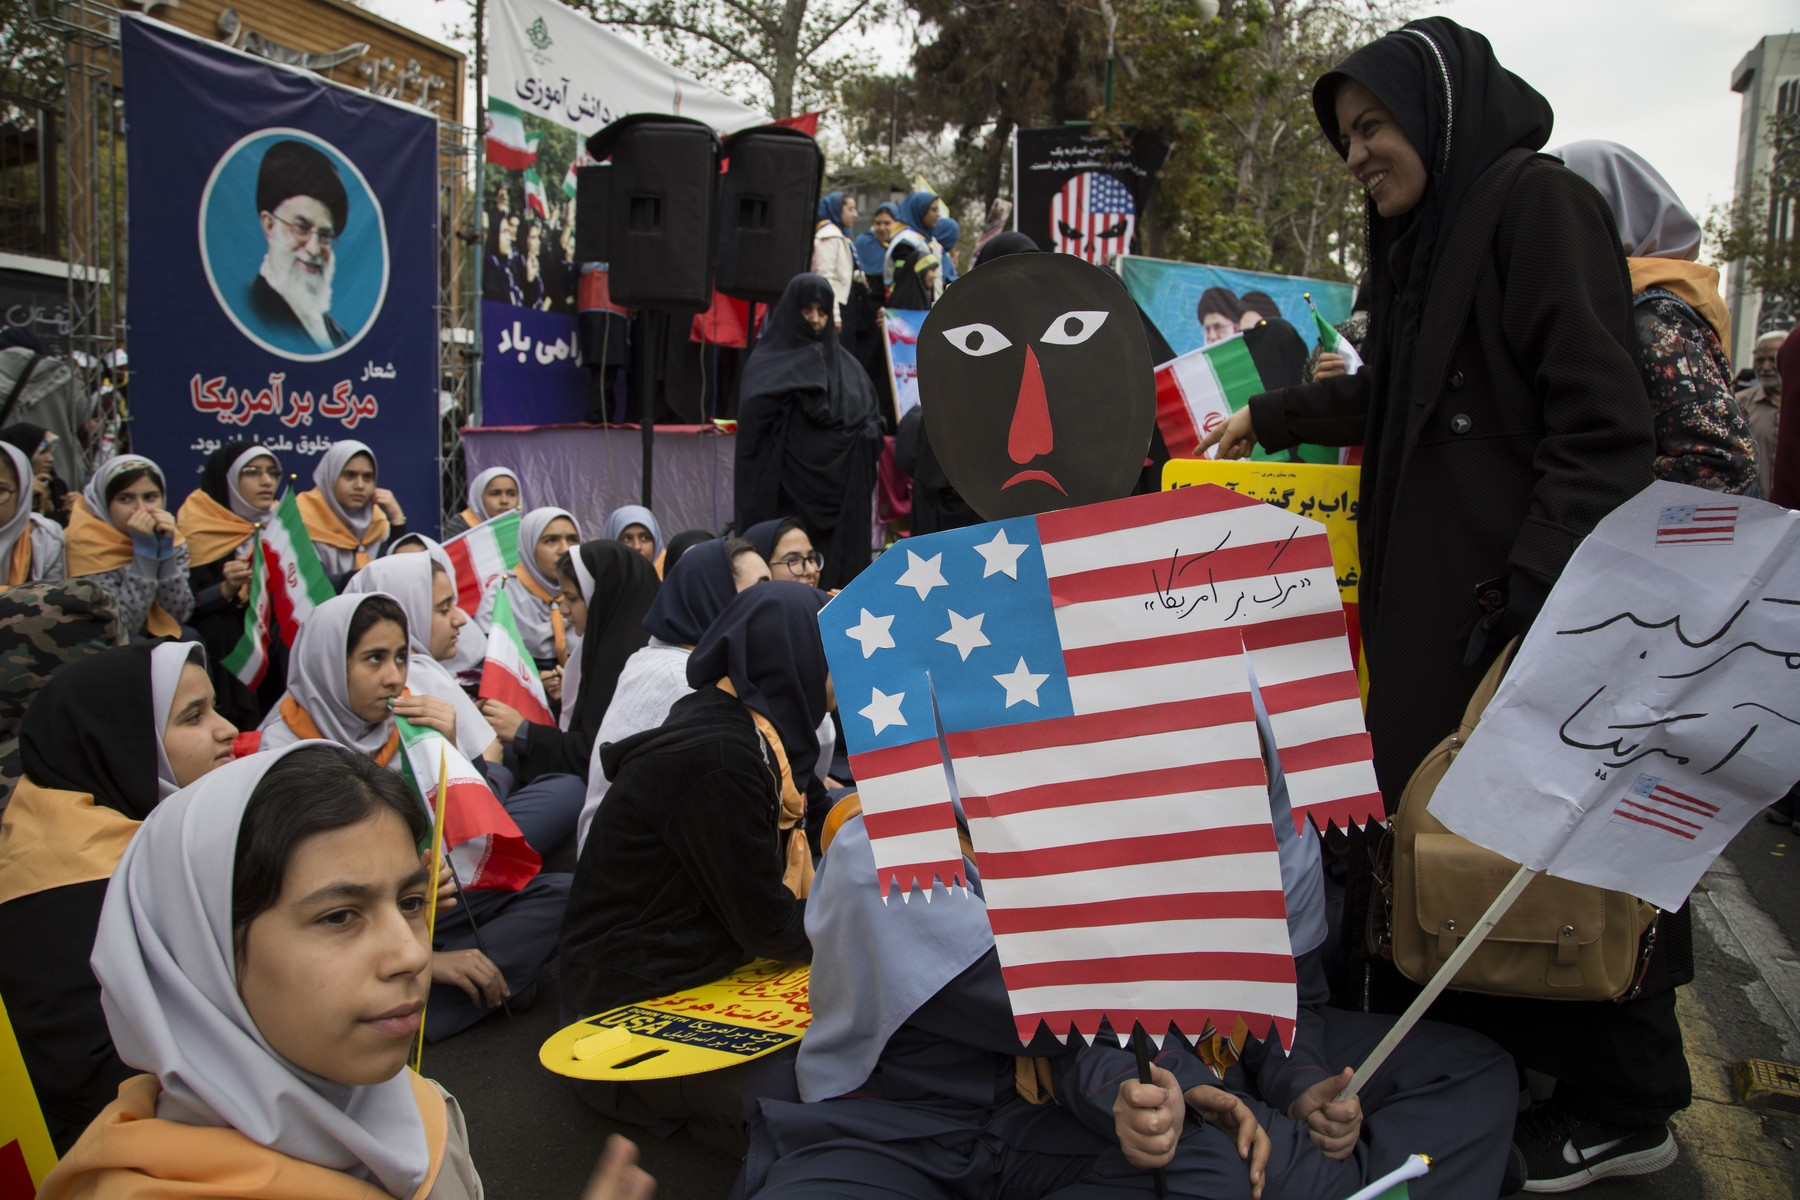 November 4, 2019, Tehran, Iran: Iranians take part in an anti-US demonstration marking the 40th anniversary of US Embassy takeover, in front of the former US embassy in Tehran, Iran. thousands of protesters chanting 'Death to America' gathered at the former US embassy in Tehran to mark the 40th anniversary of the start of the Iran hostage crisis. Iranian students occupied the embassy on 04 November 1979 after the USA granted permission to the late Iranian Shah to be hospitalized in the United States. Over 50 US diplomats and guards were held hostage by students for 444 days., Image: 480977251, License: Rights-managed, Restrictions: , Model Release: no, Credit line: Rouzbeh Fouladi / Zuma Press / Profimedia